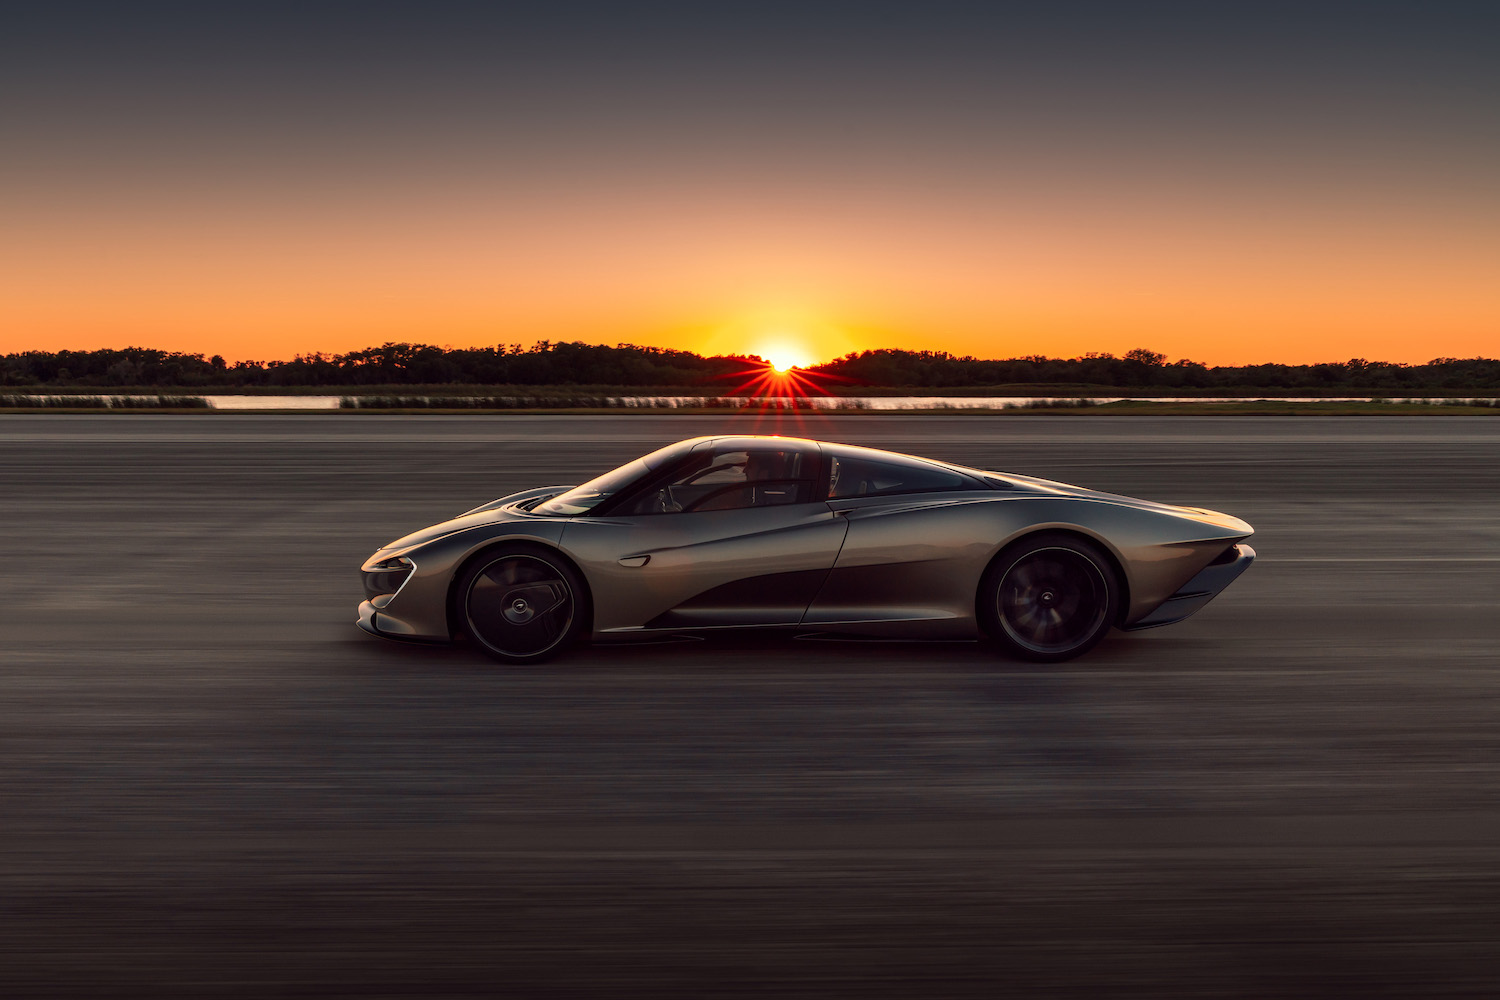 The McLaren Speedtail achieved its 250 mph top speed at the Kennedy Space Center thumbnail